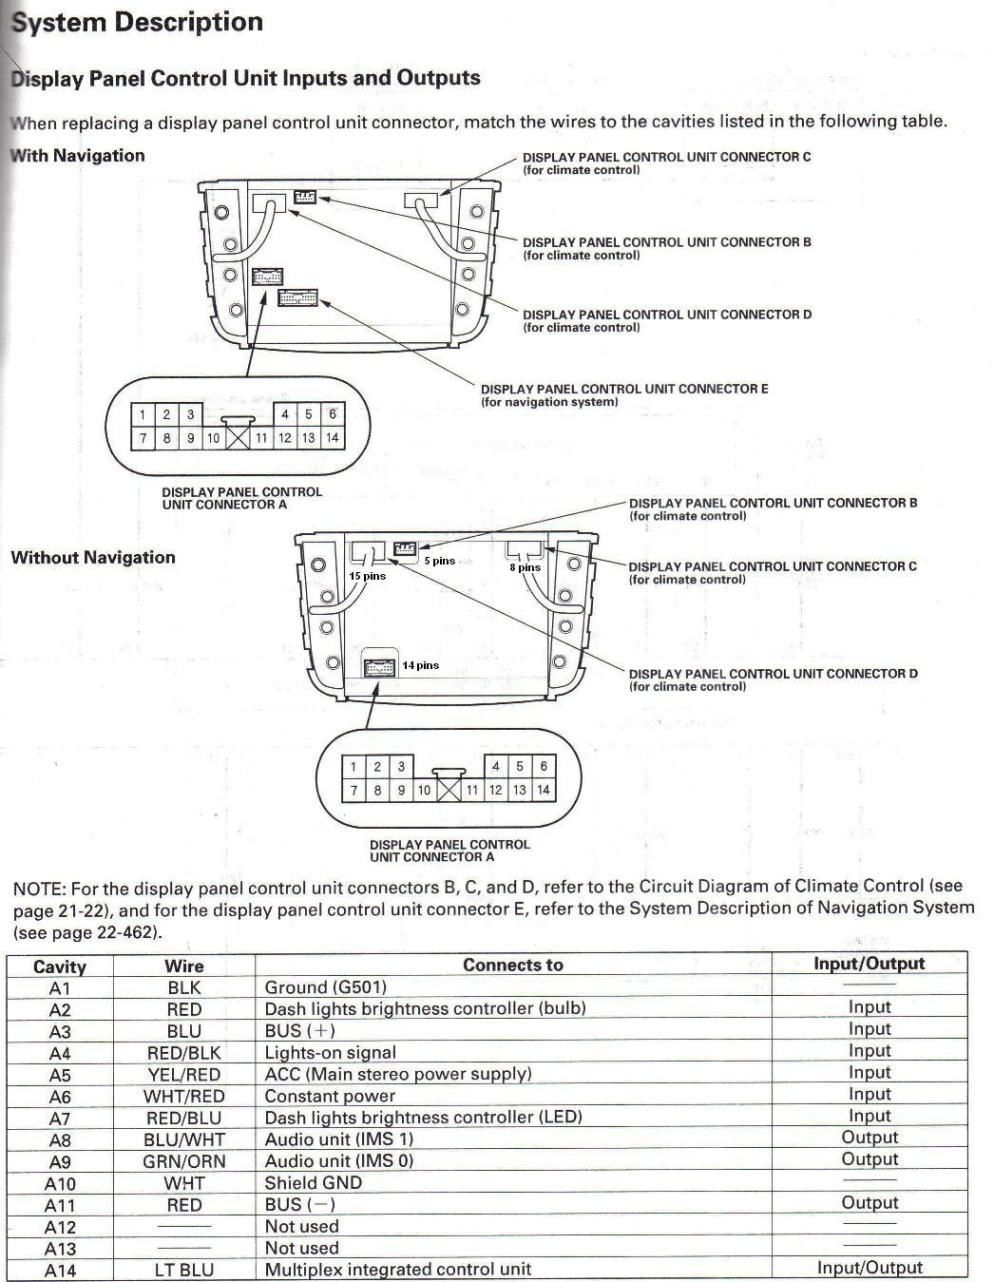 medium resolution of 2007 acura mdx stereo wiring diagram 36 wiring diagram 2005 acura tl subwoofer replacement 05 acura tl dash navigation